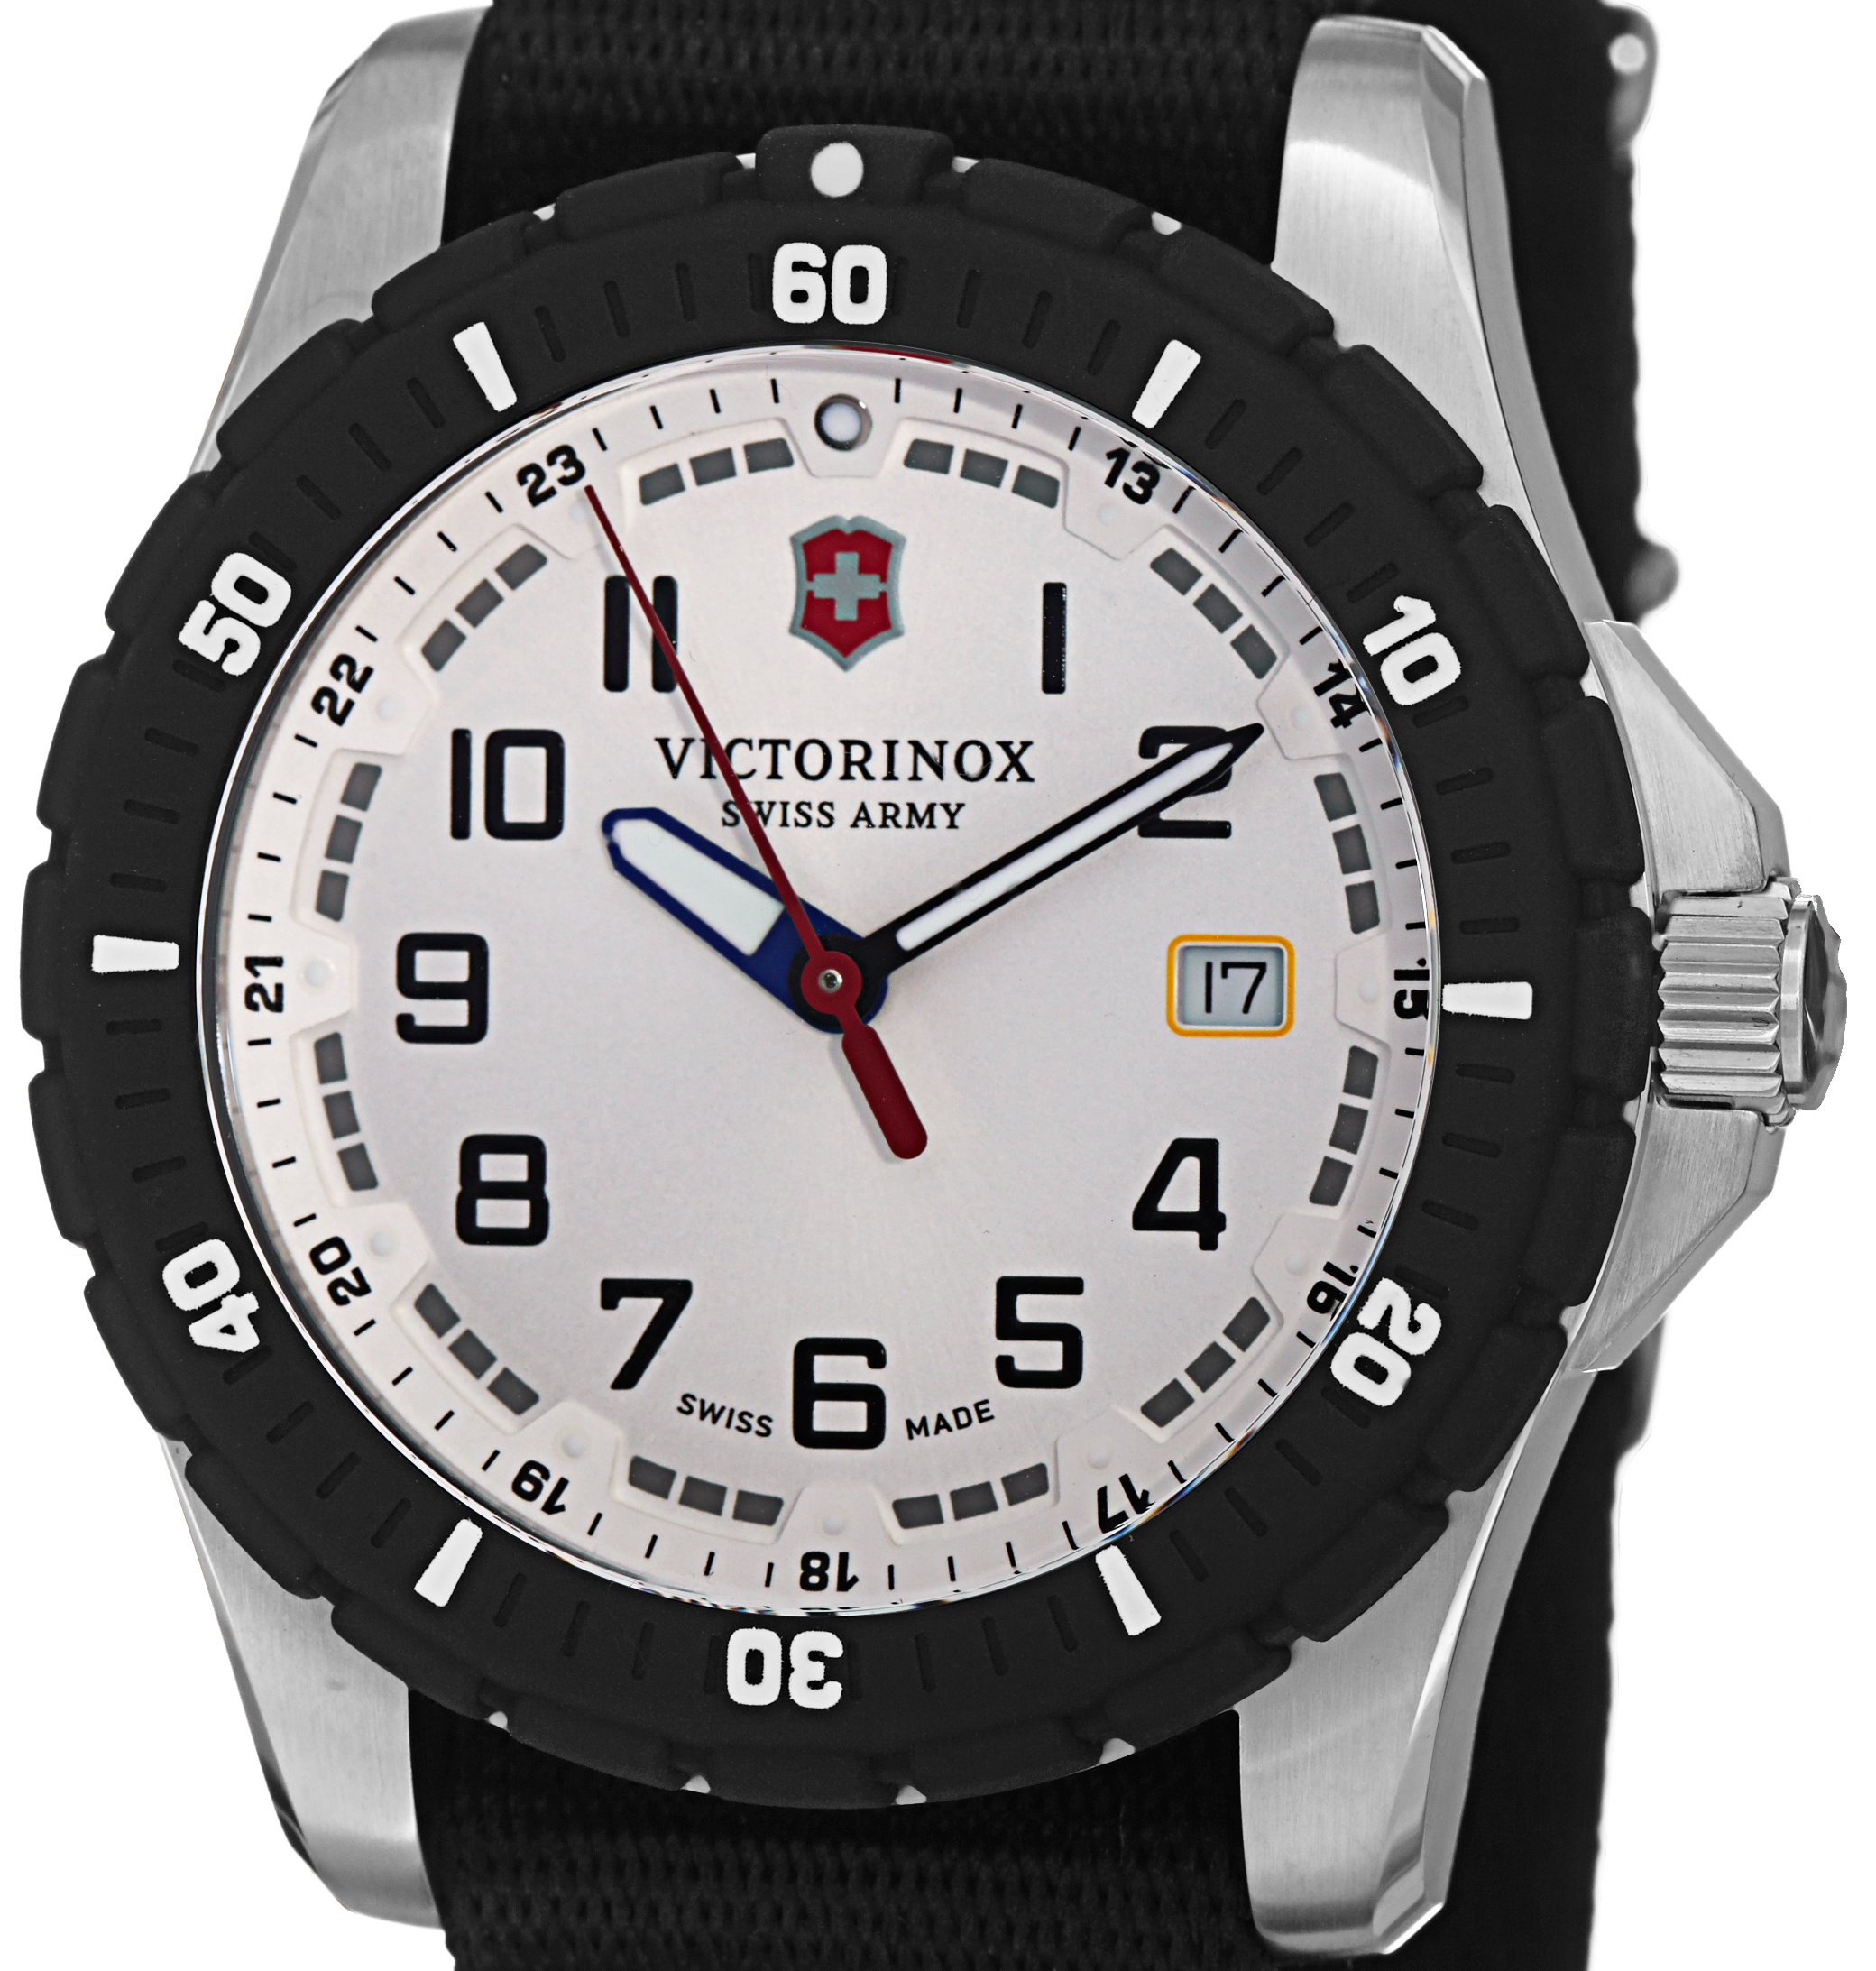 swiss wenger chrono the someone being of watch on this first hands is watches picture img says victorinox part wrist when probably review squadron likely however other army you a